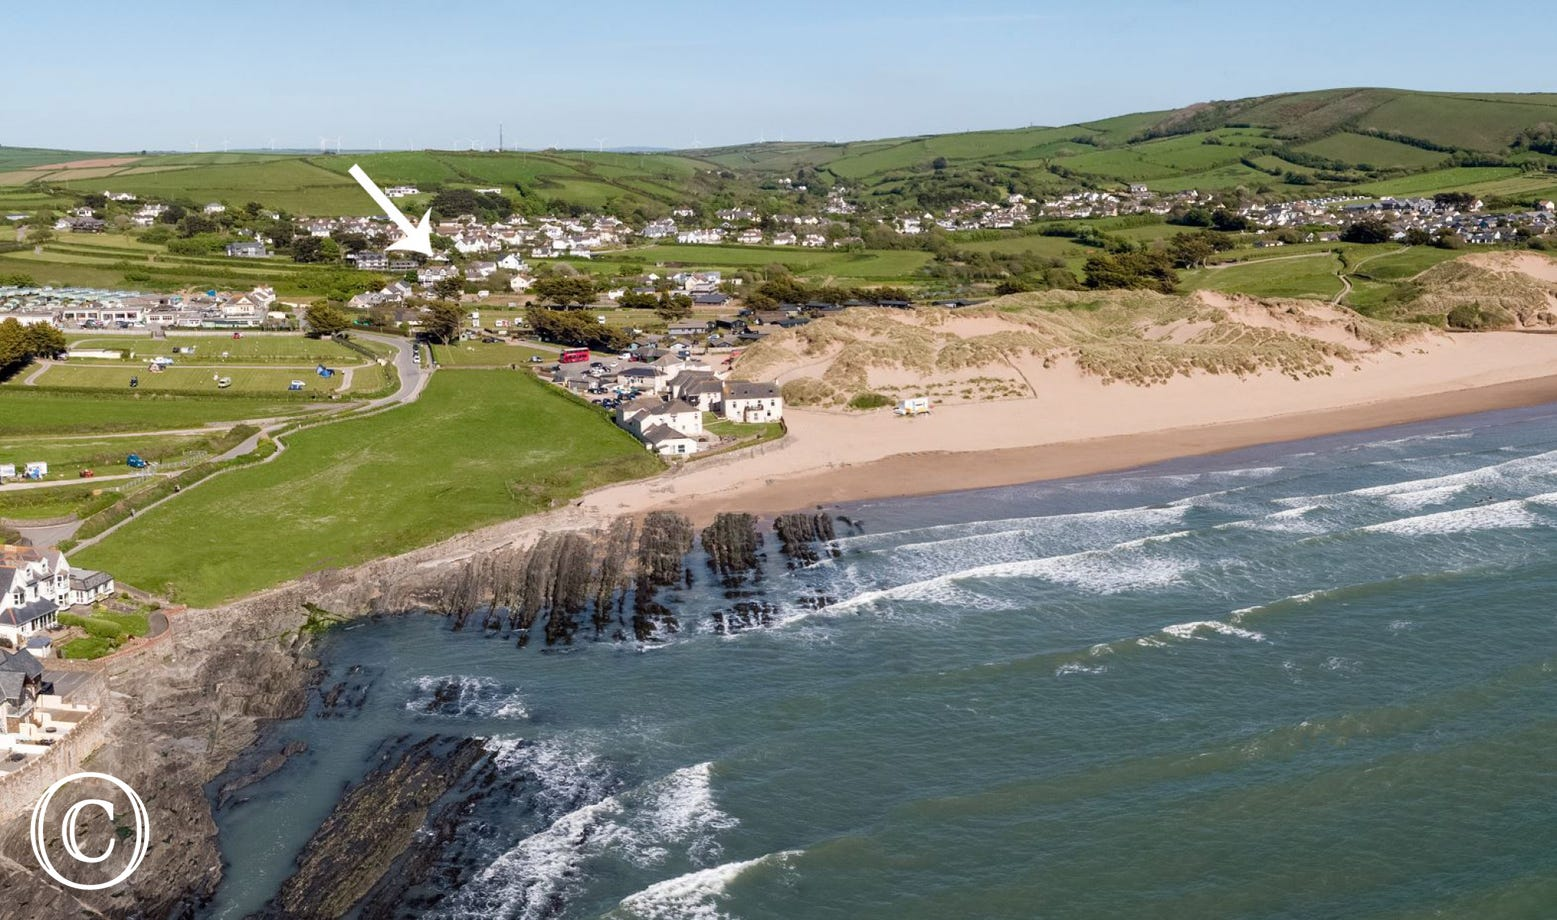 An aerial view of Croyde beach showing just how close The Bolthole is to the beach